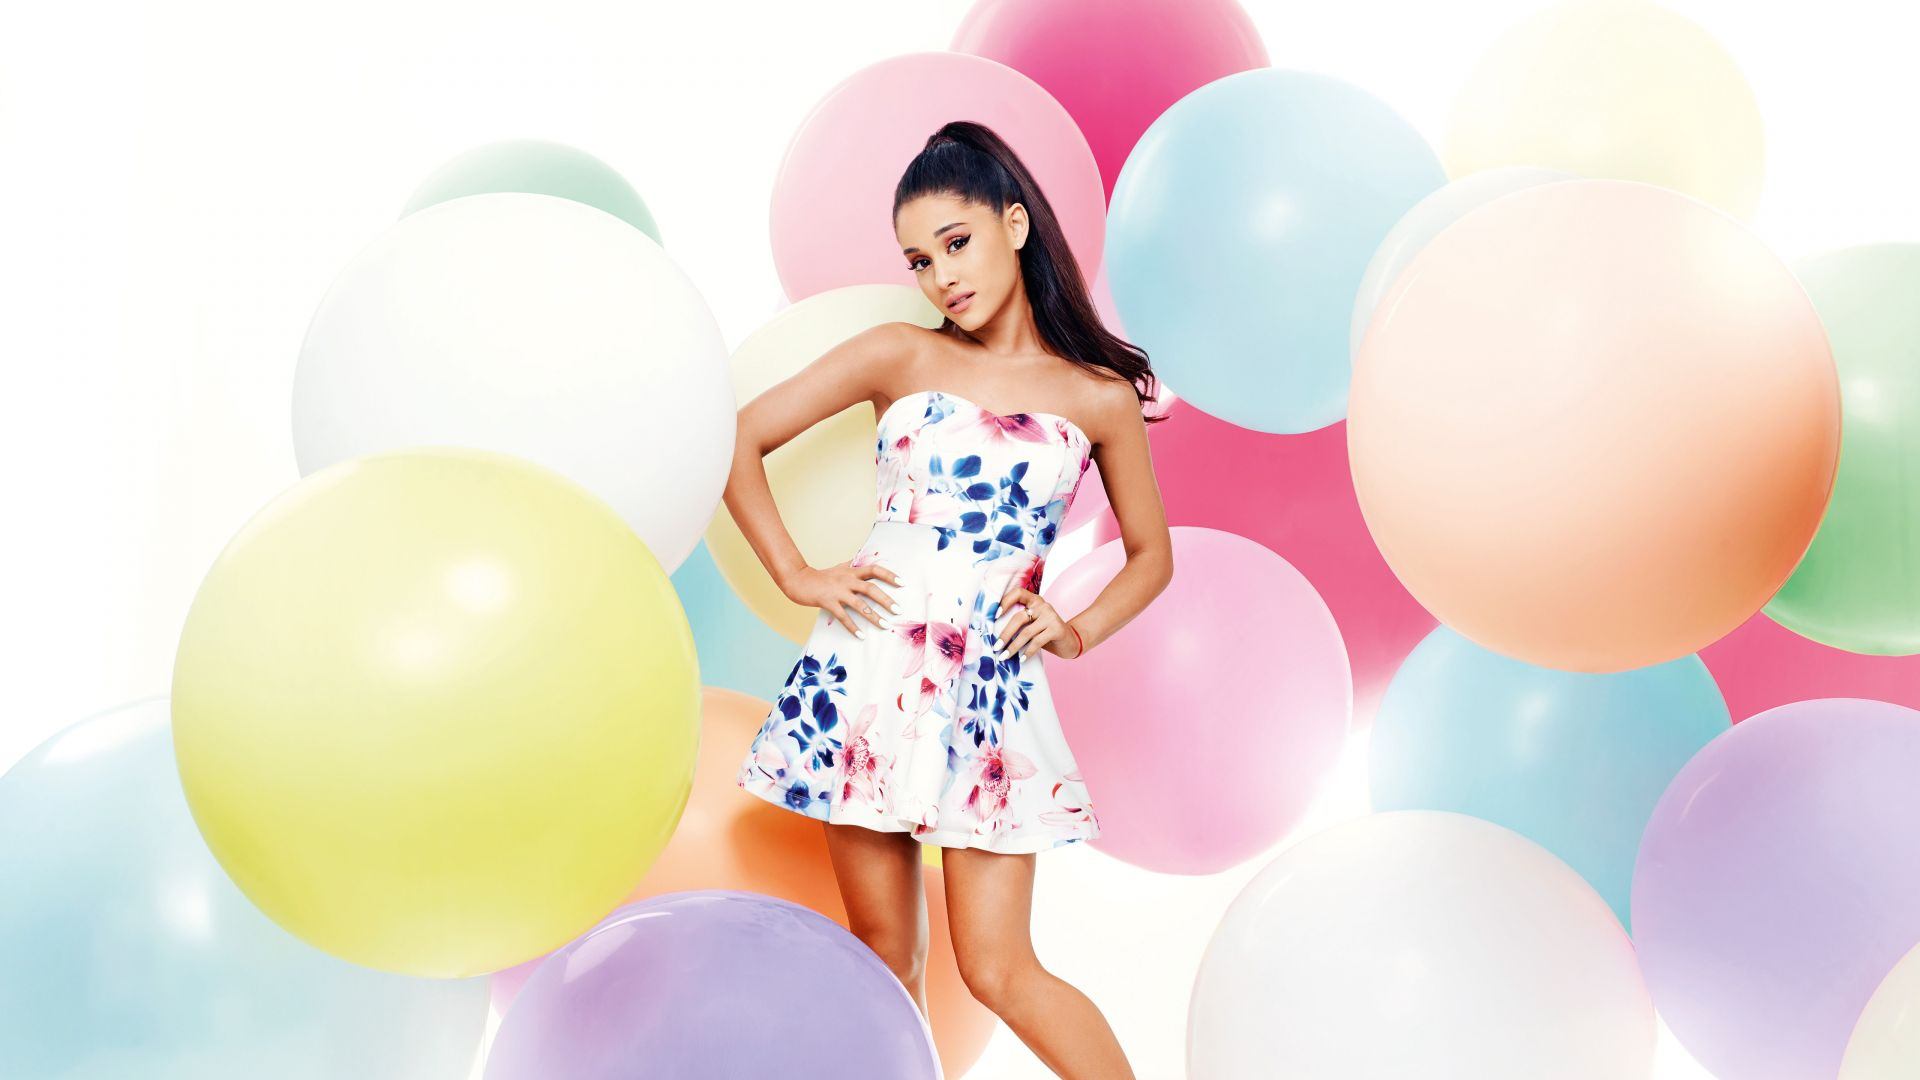 Ariana Grande, Top music artist and bands, singer, actress (horizontal)